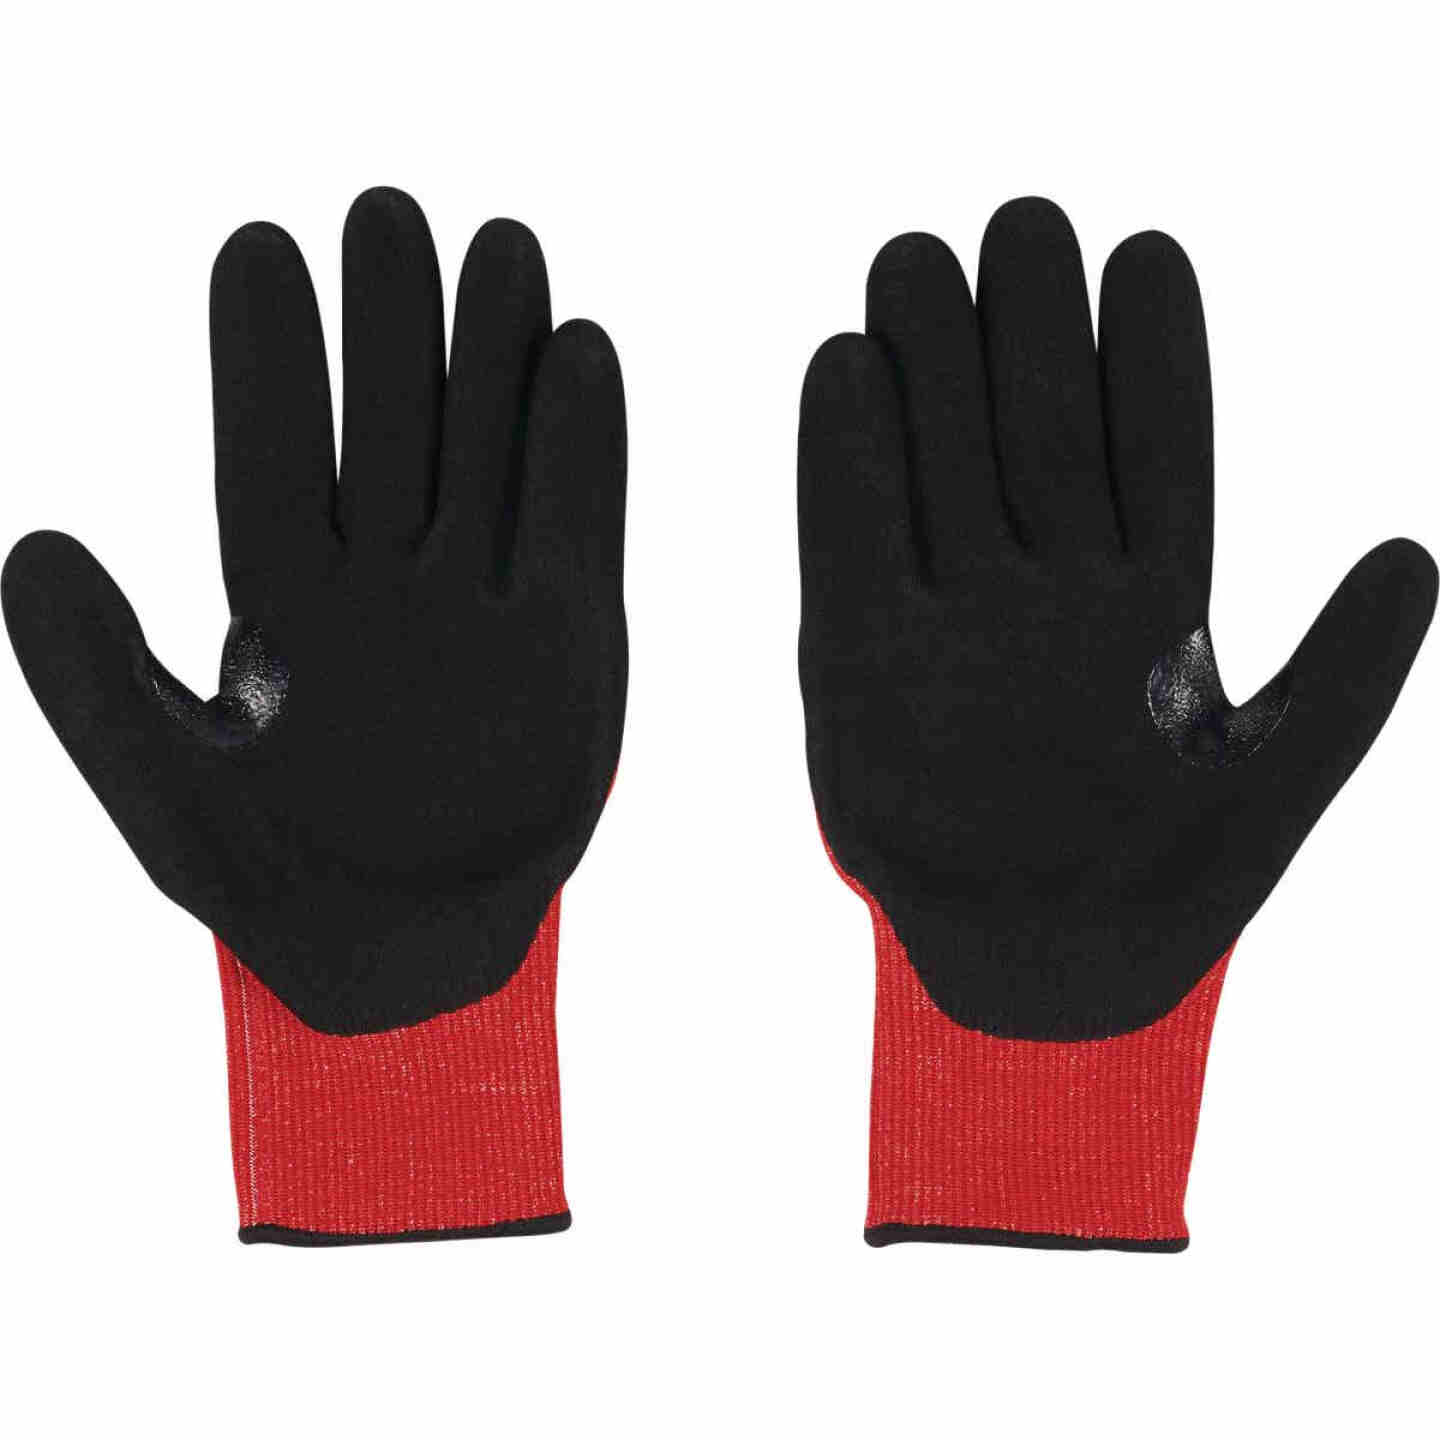 Milwaukee Impact Cut Level 3 XL Men's Nitrile Dipped Work Gloves Image 1